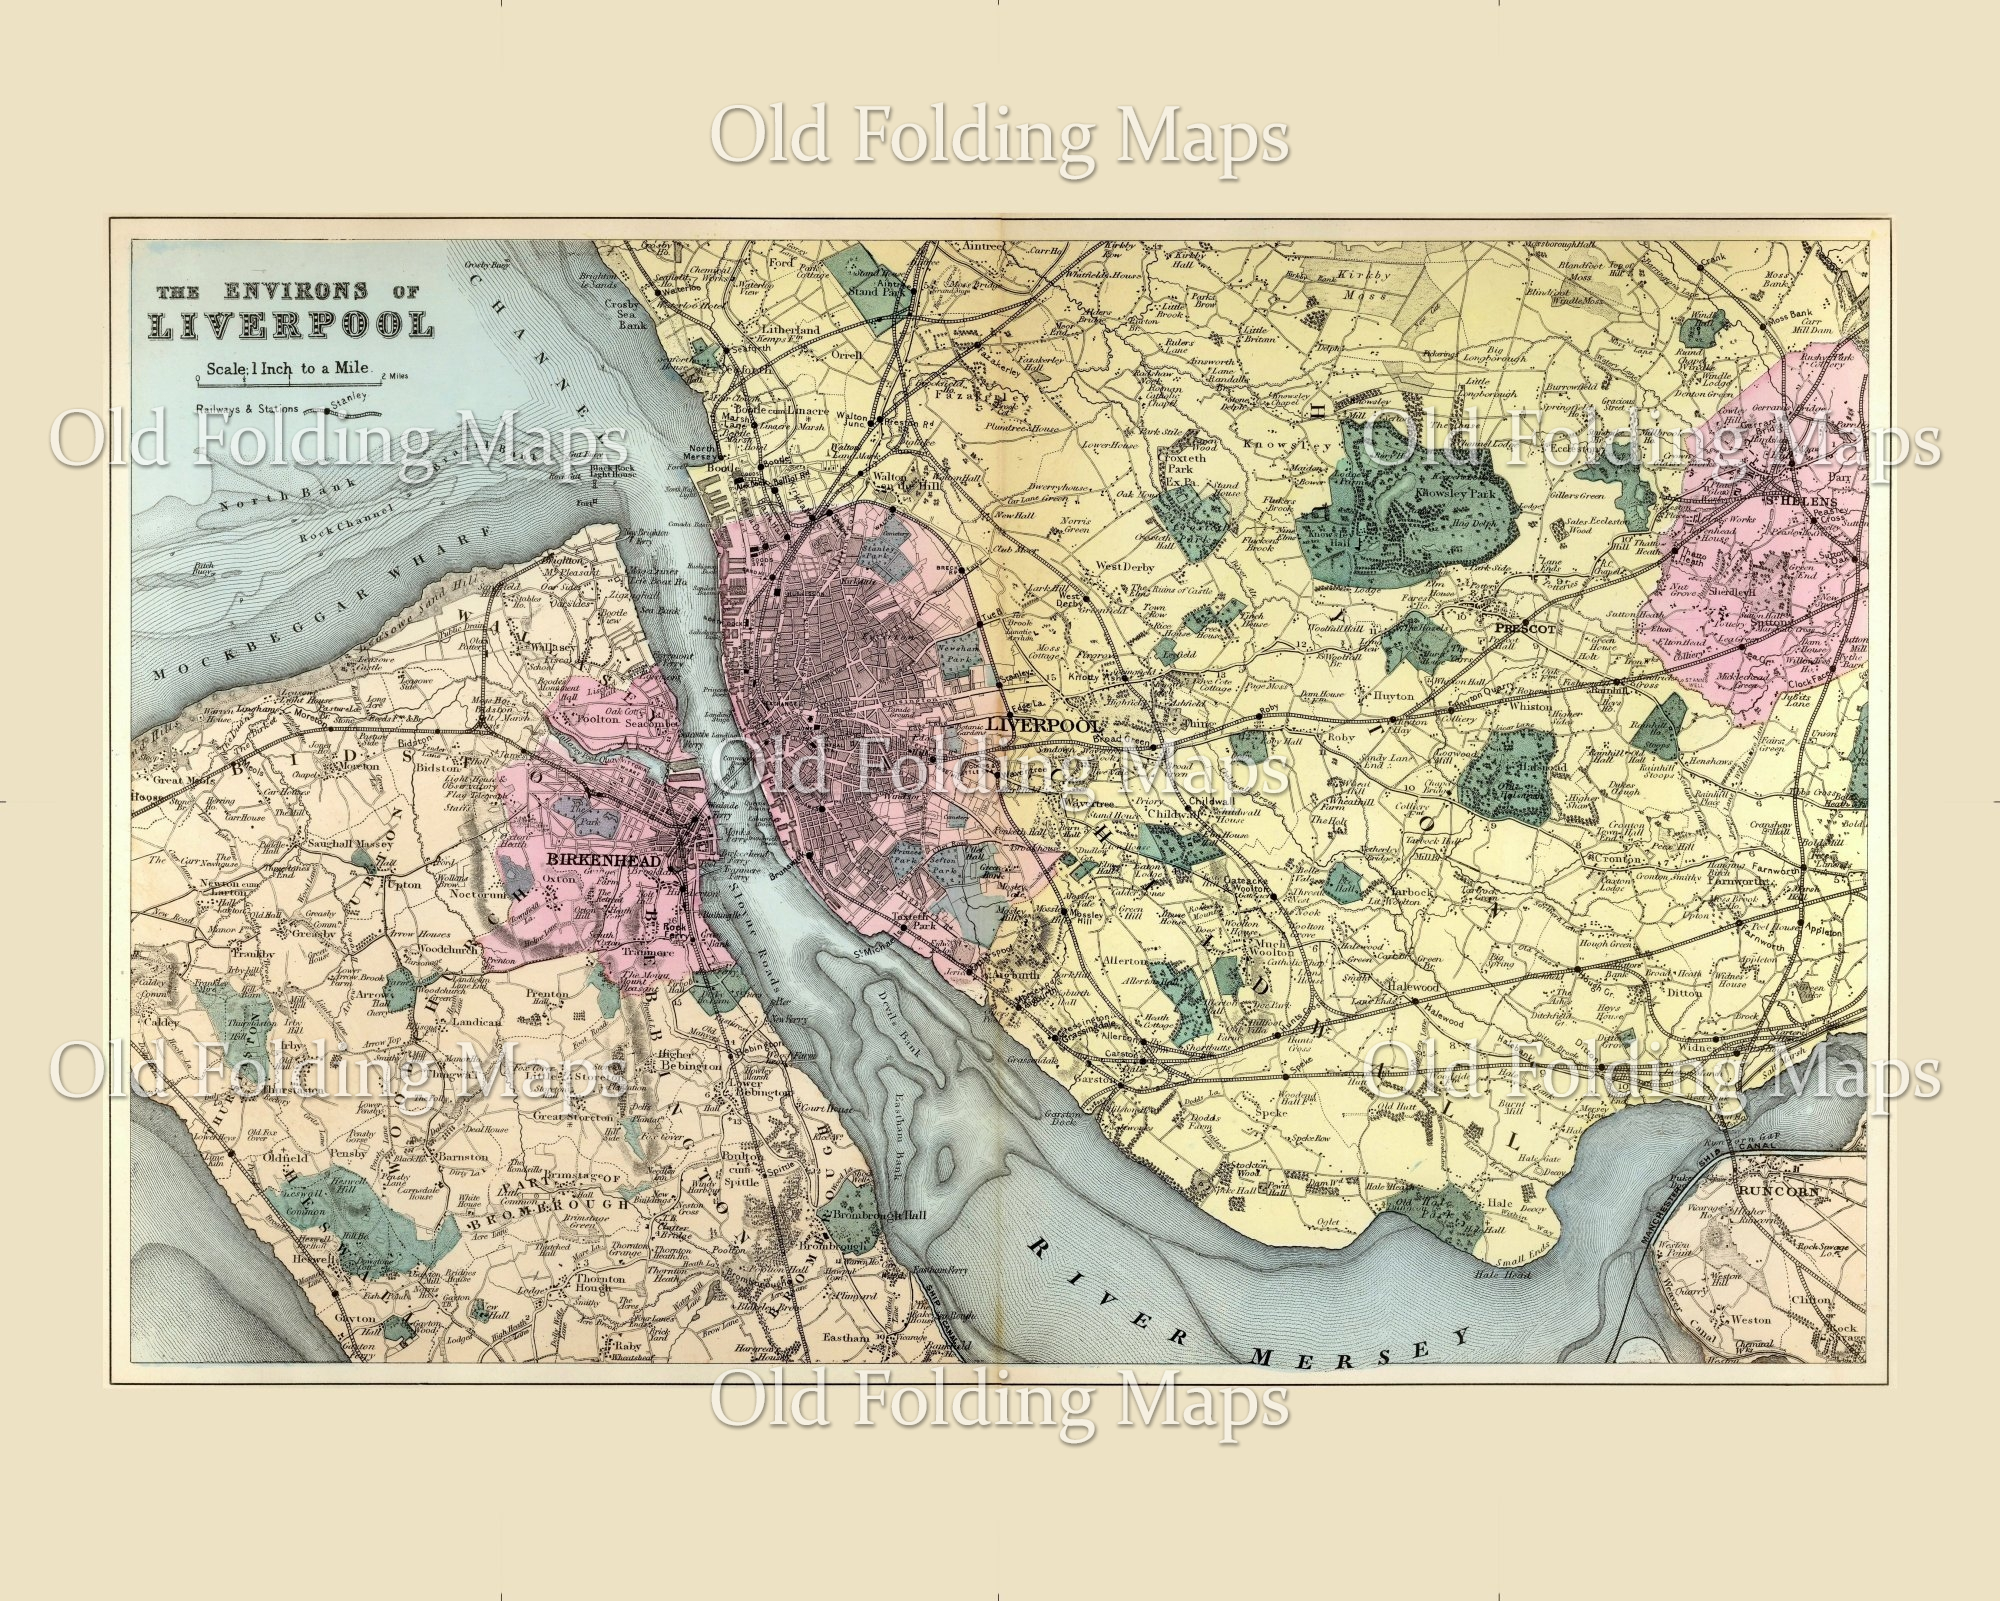 Old map of Liverpool, England circa 1885